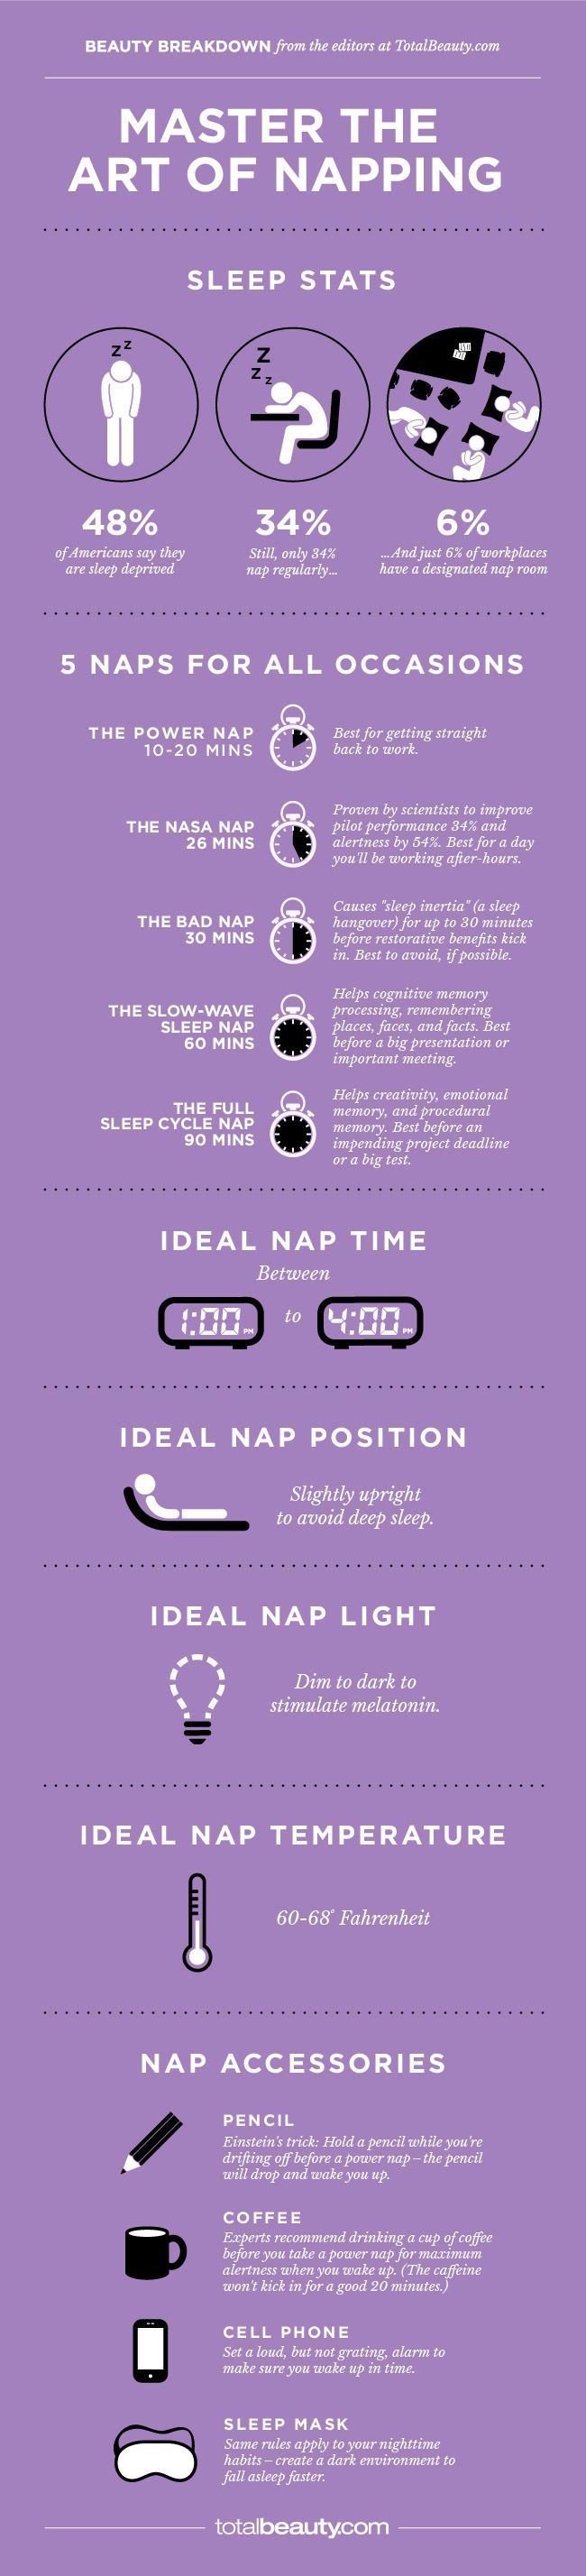 Good to know I already do much of this. Feeling like a pro napper. I love napping.